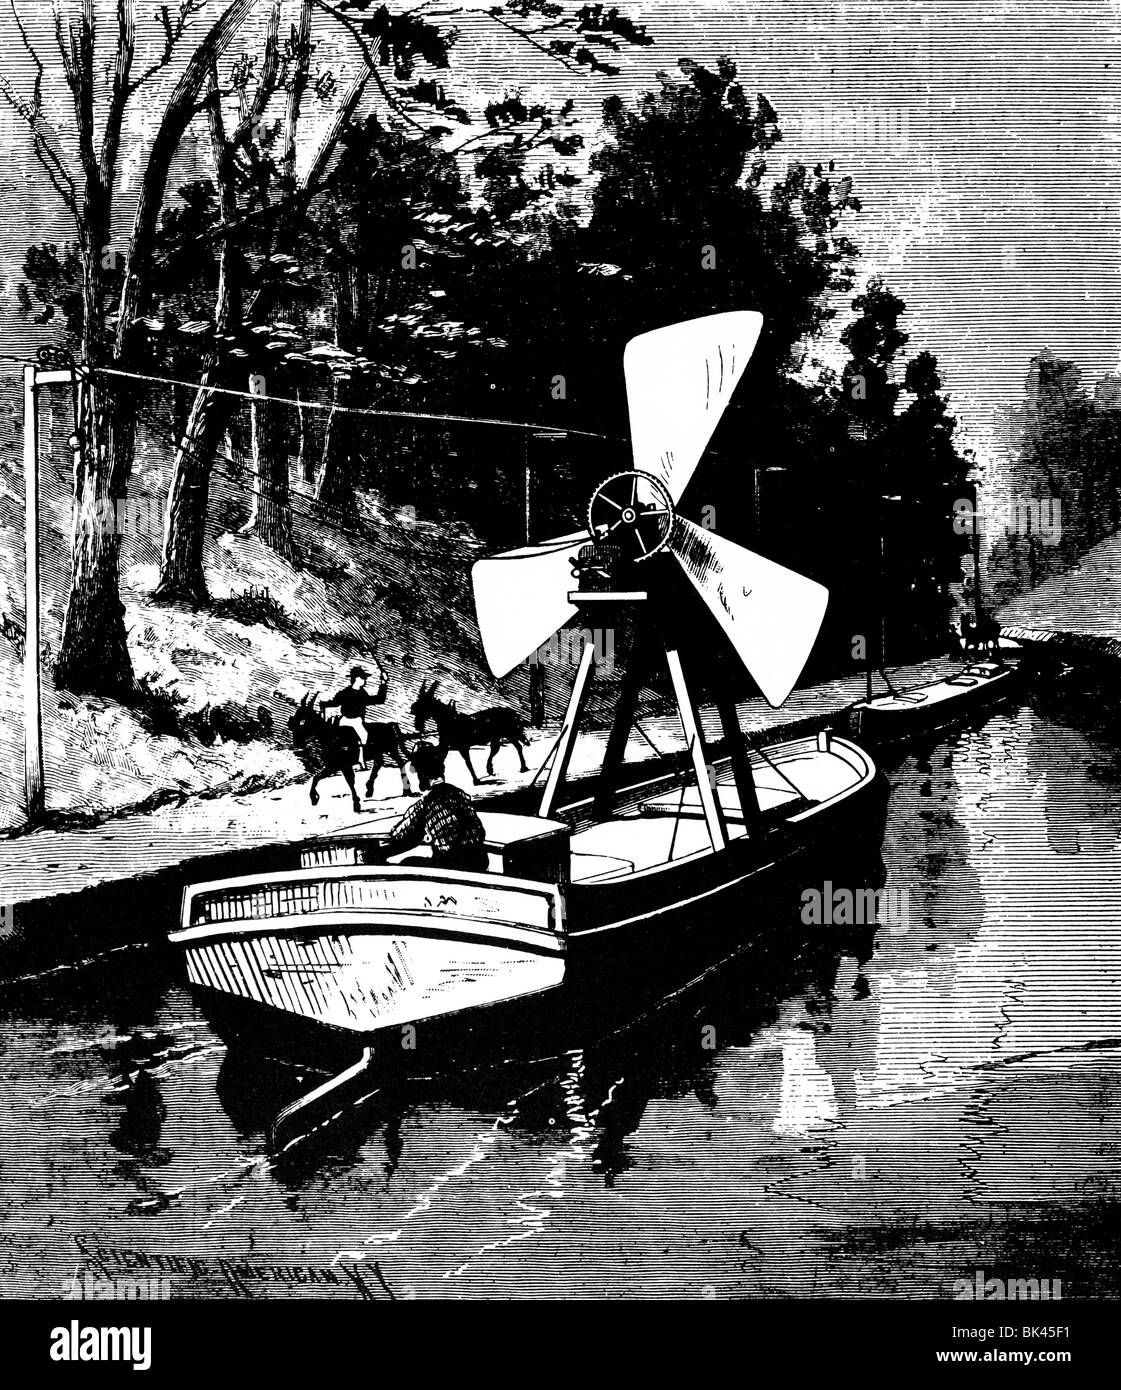 design for a canal boat propulsion, 1889 - Stock Image